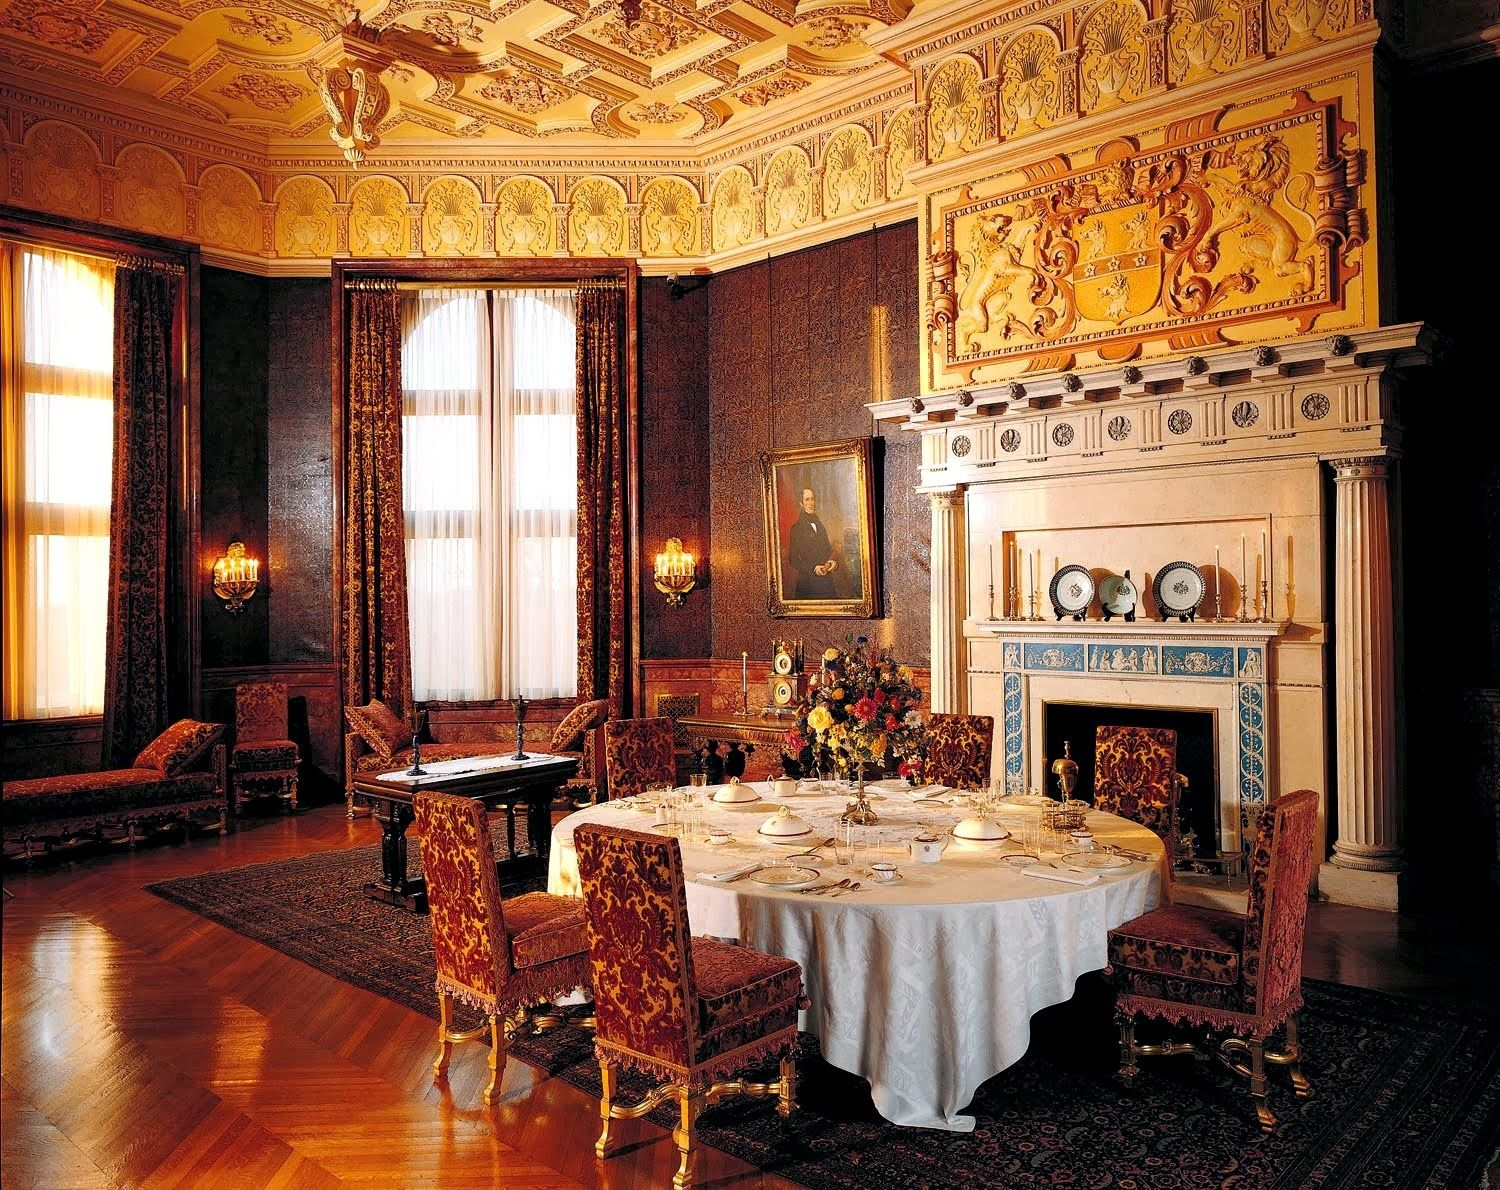 Charmant The Breakfast Room   An American Castle, The Biltmore Estate (located In  Ashville, NC)